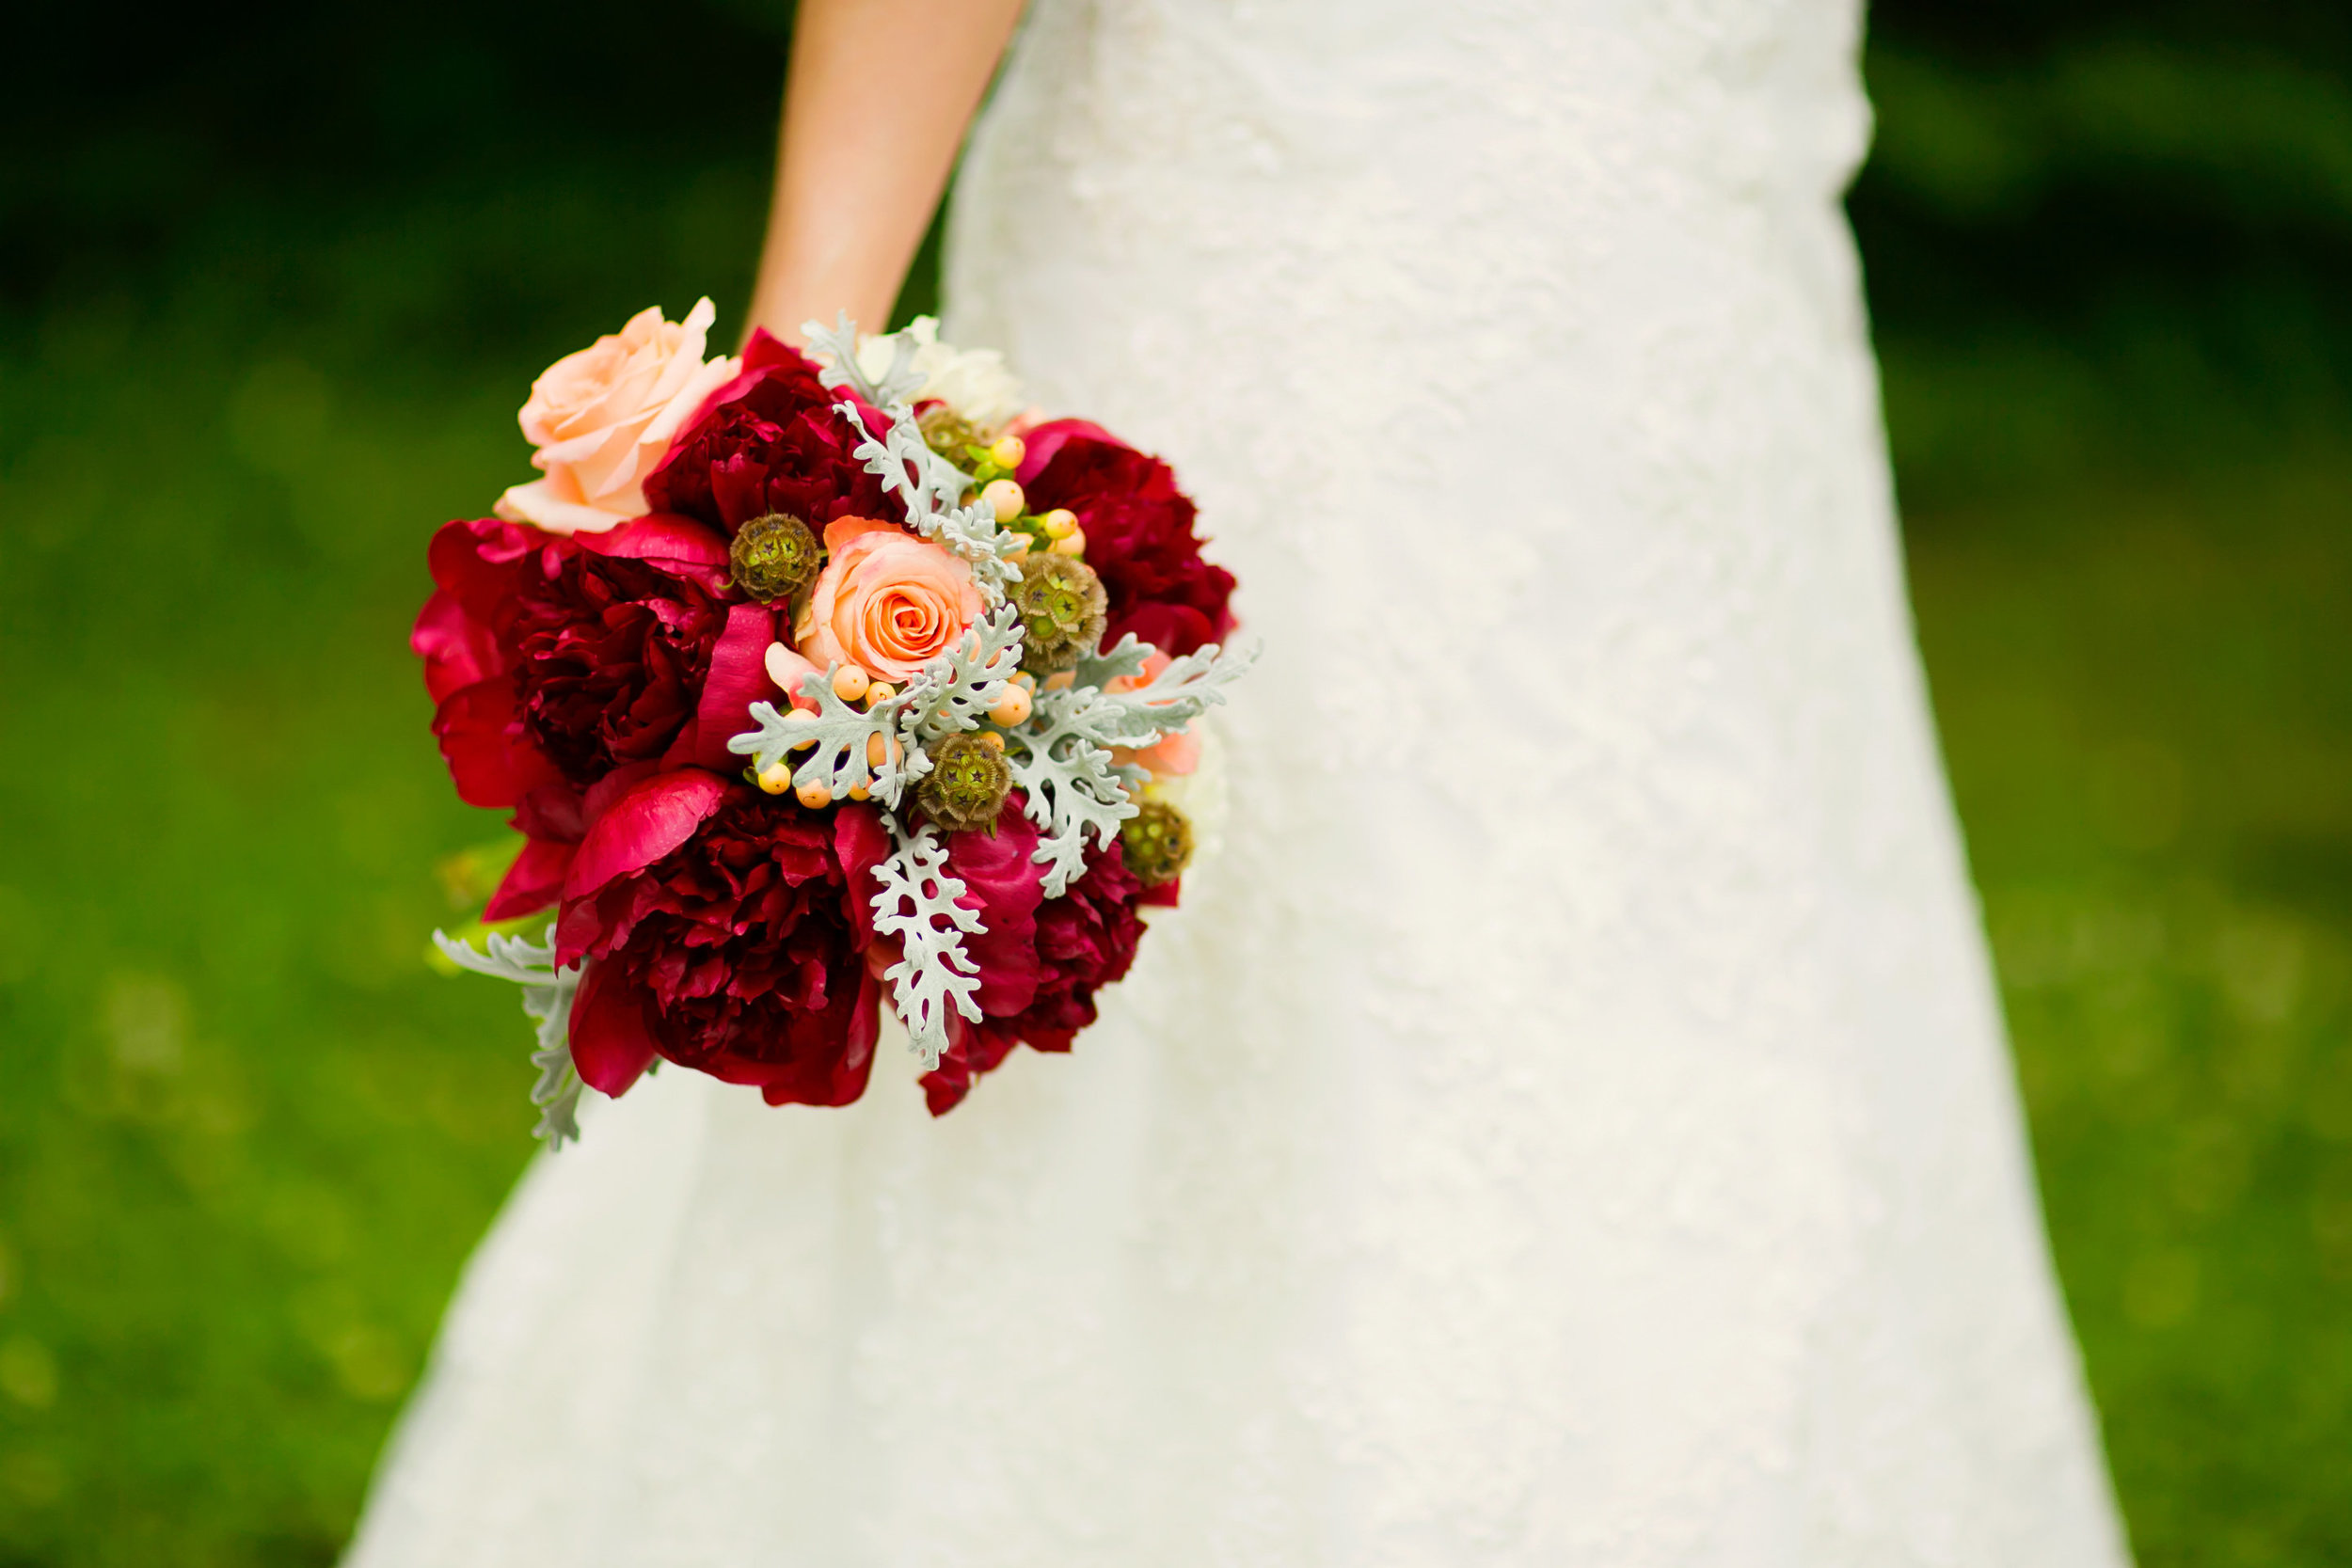 Nashville Wedding // Flowers by Rosemary & Finch // Photo by Sara Renee